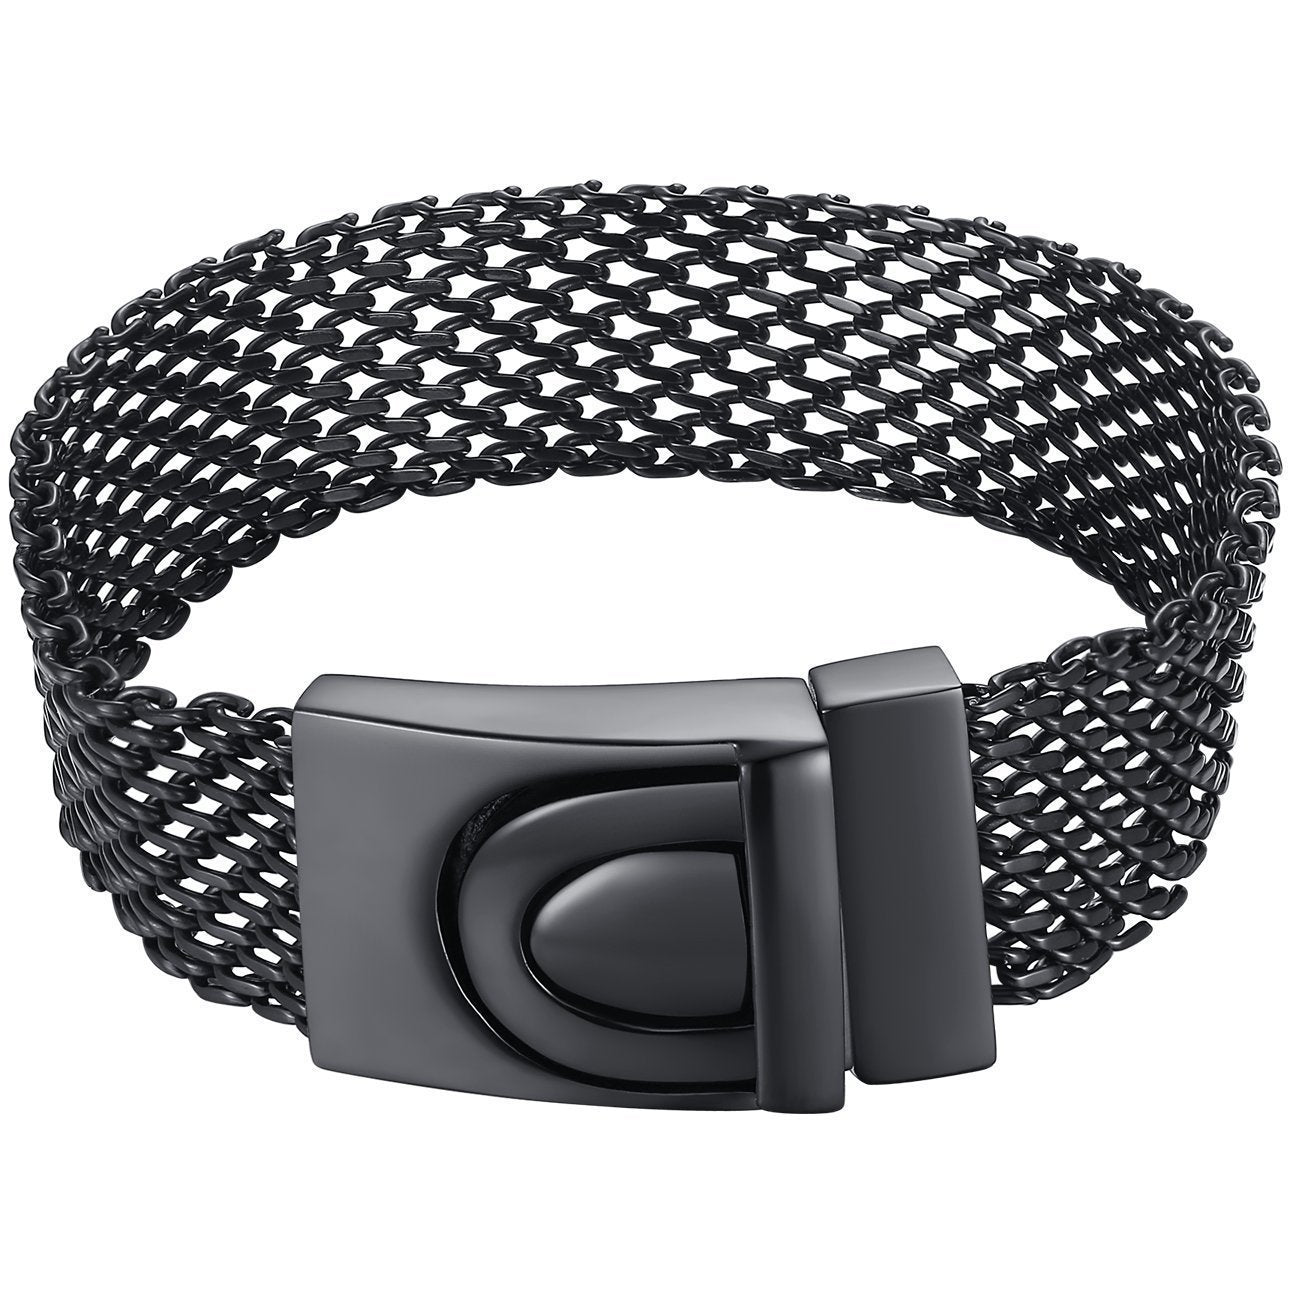 Aoiy Men's Stainless Steel Mesh Chain Belt Style Bracelet (black-color) @ Sons of Odin™ - Jewelry on